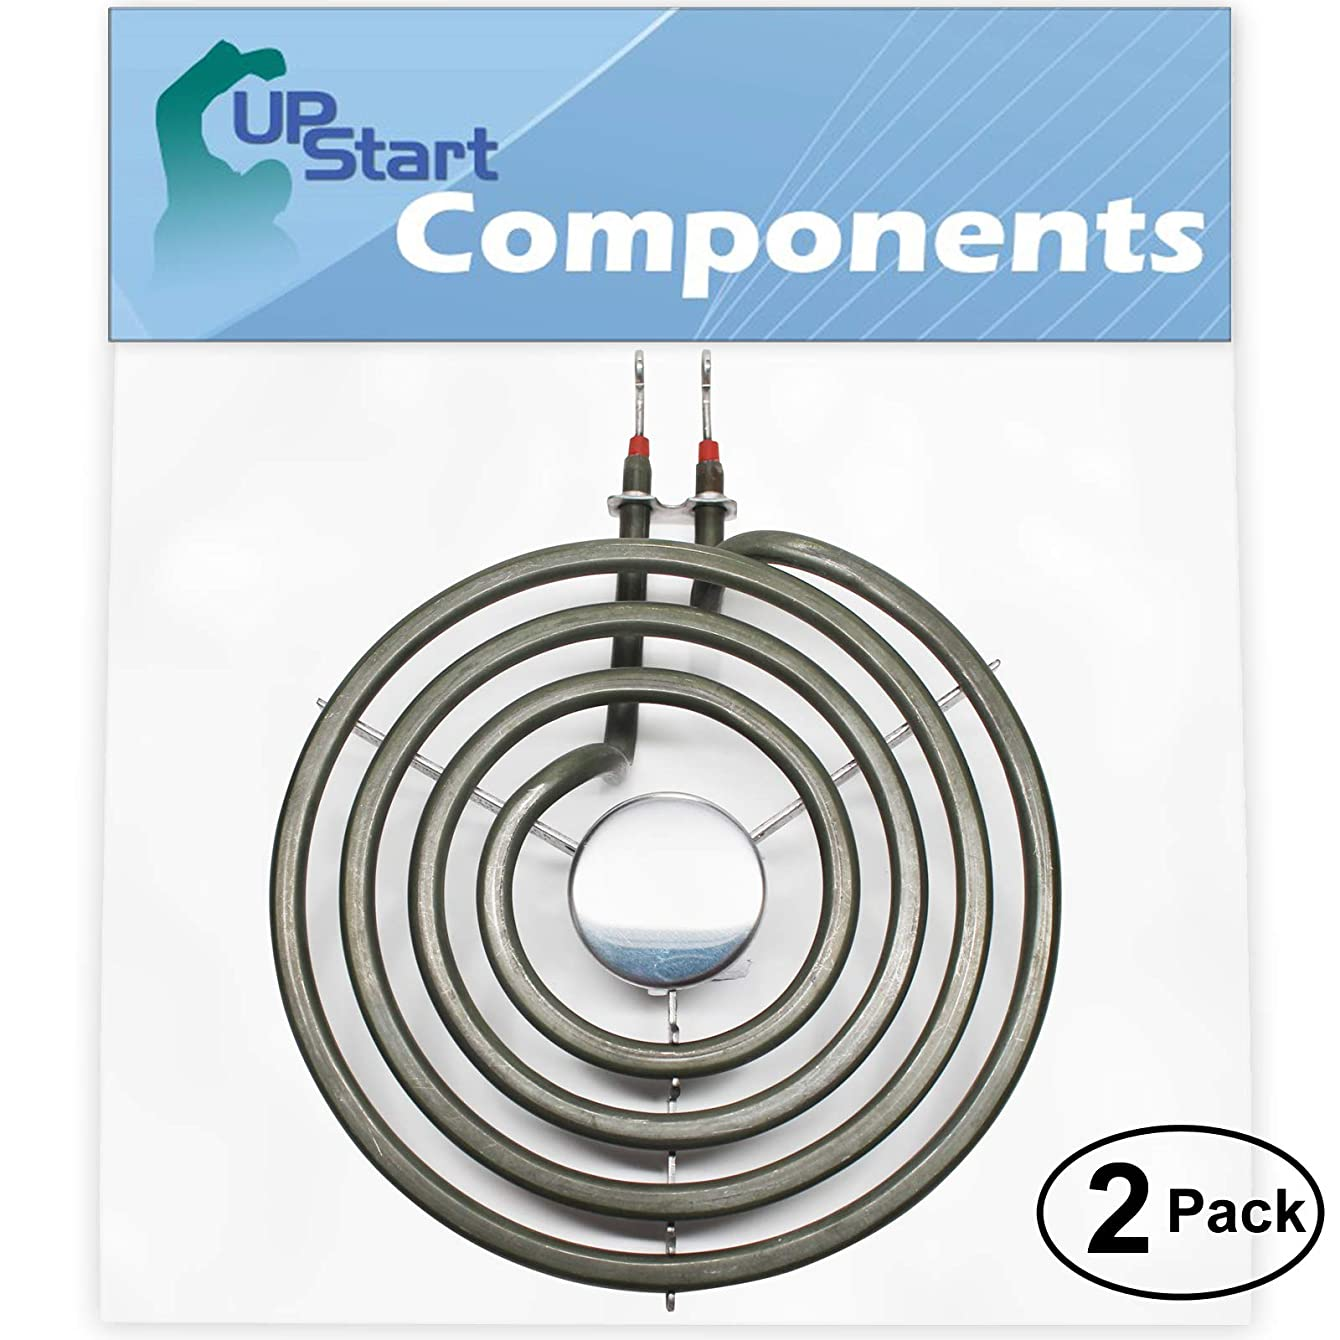 2-Pack Replacement Whirlpool IME32300 6 inch 4 Turns Surface Burner Element - Compatible Whirlpool 660532 Heating Element for Range, Stove & Cooktop